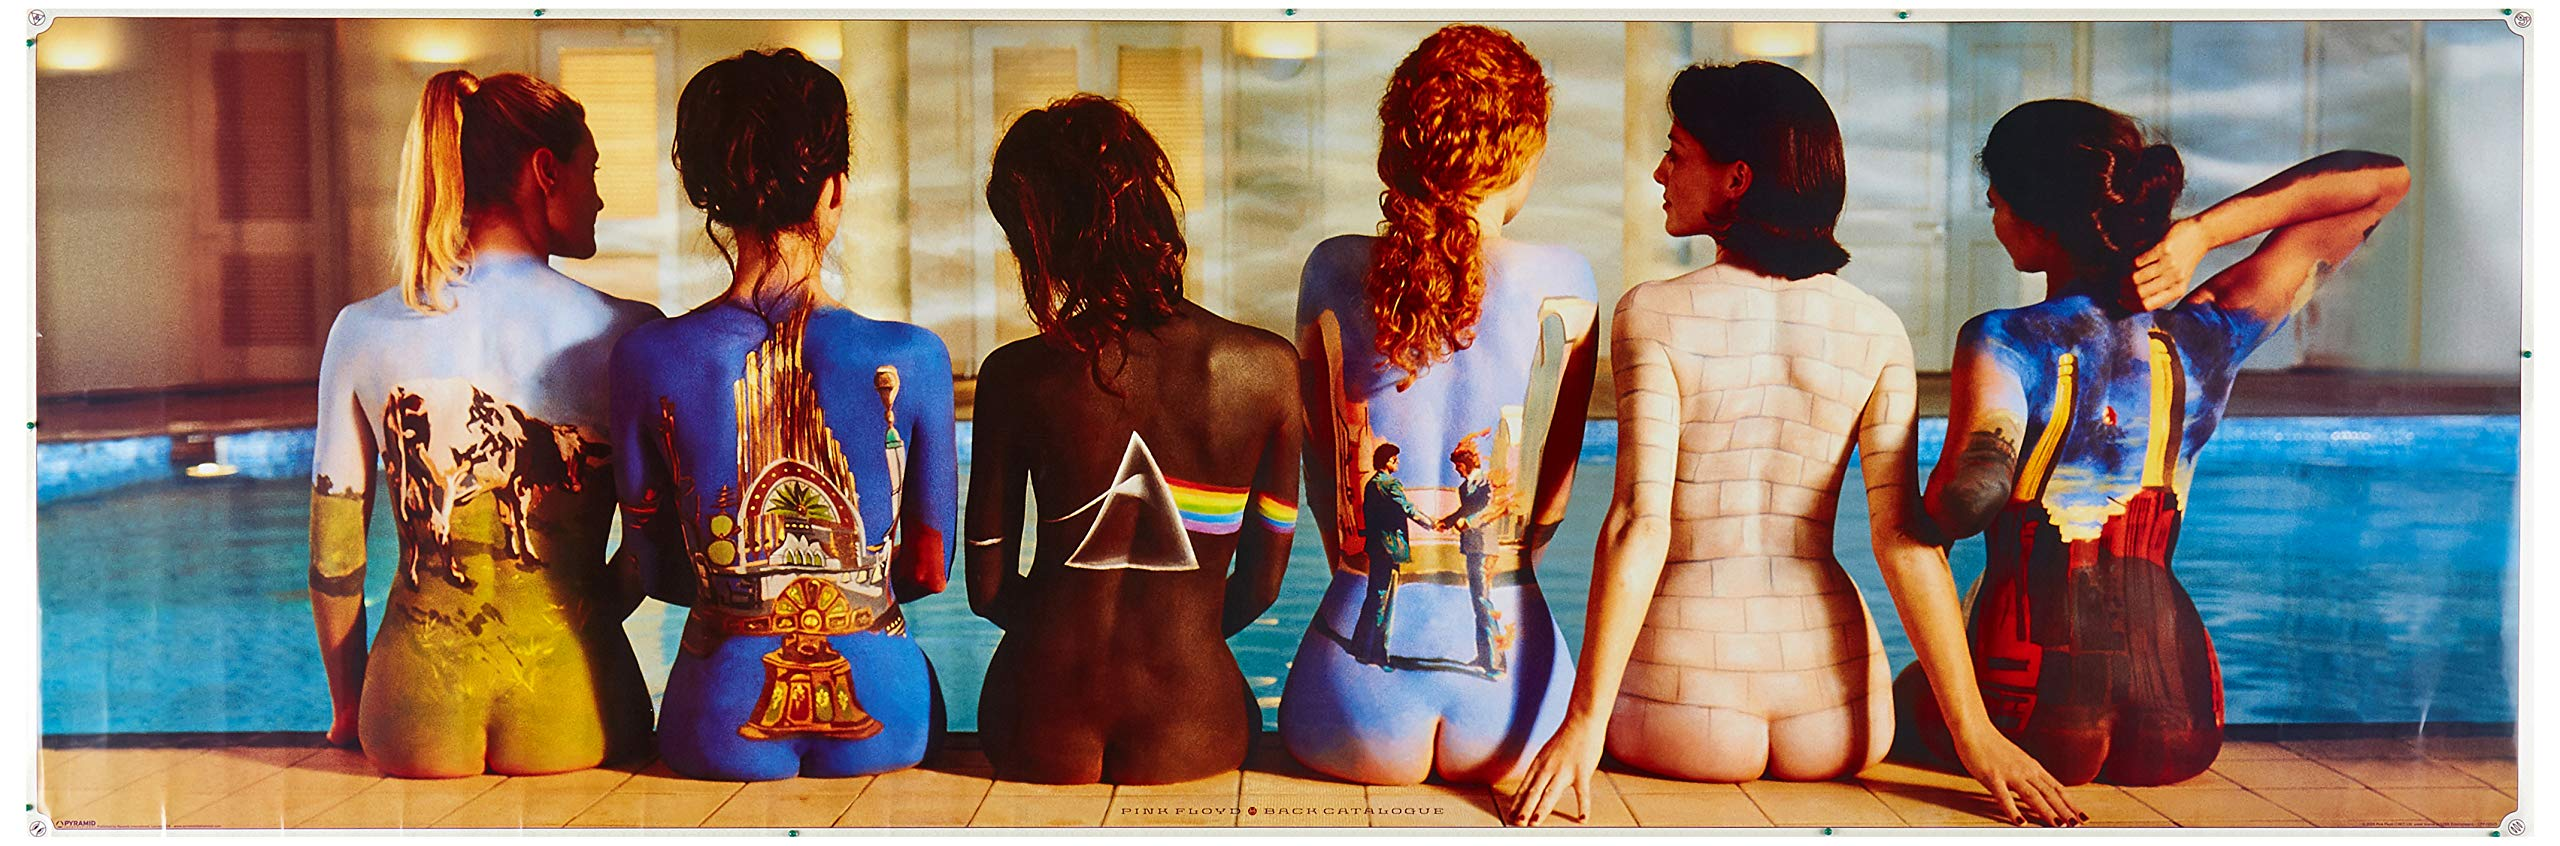 Pyramid Door Poster - Pink Floyd Back Catalogue, 53 x 158 cm by Pyramid